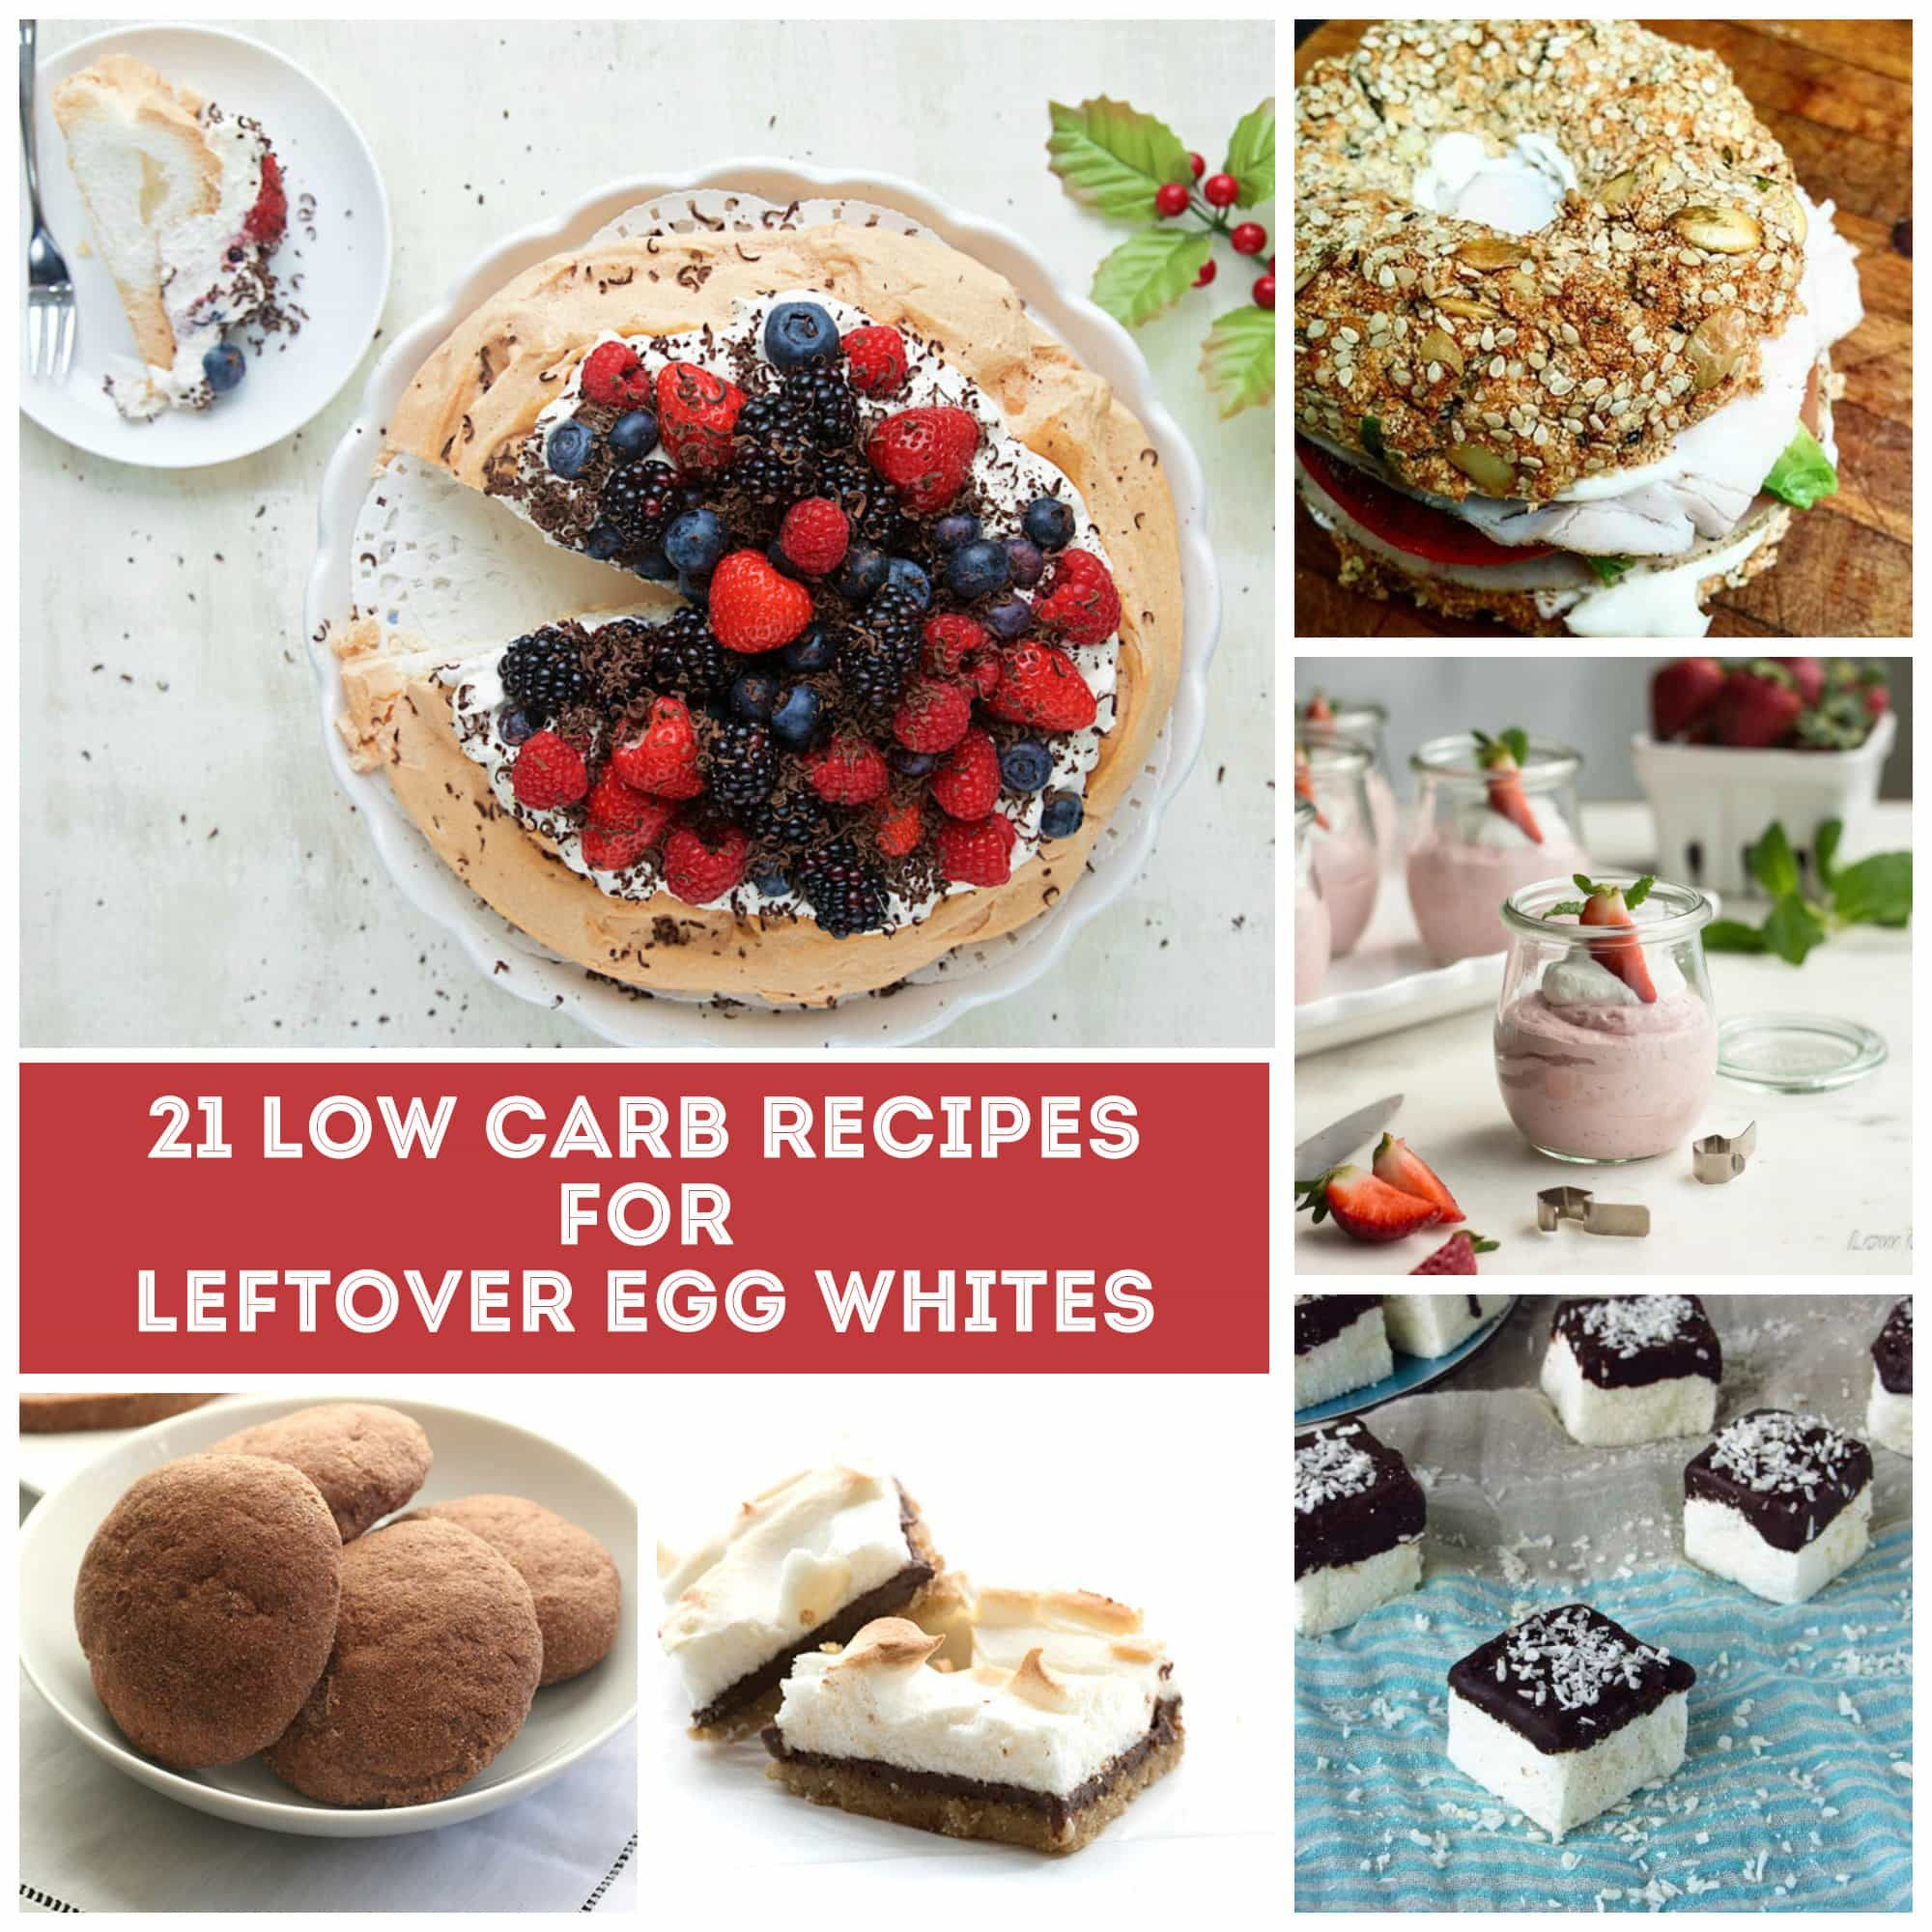 21 Low Carb Recipes For Leftover Egg Whites With Images Leftover Egg Whites Egg White Recipes Leftover Eggs